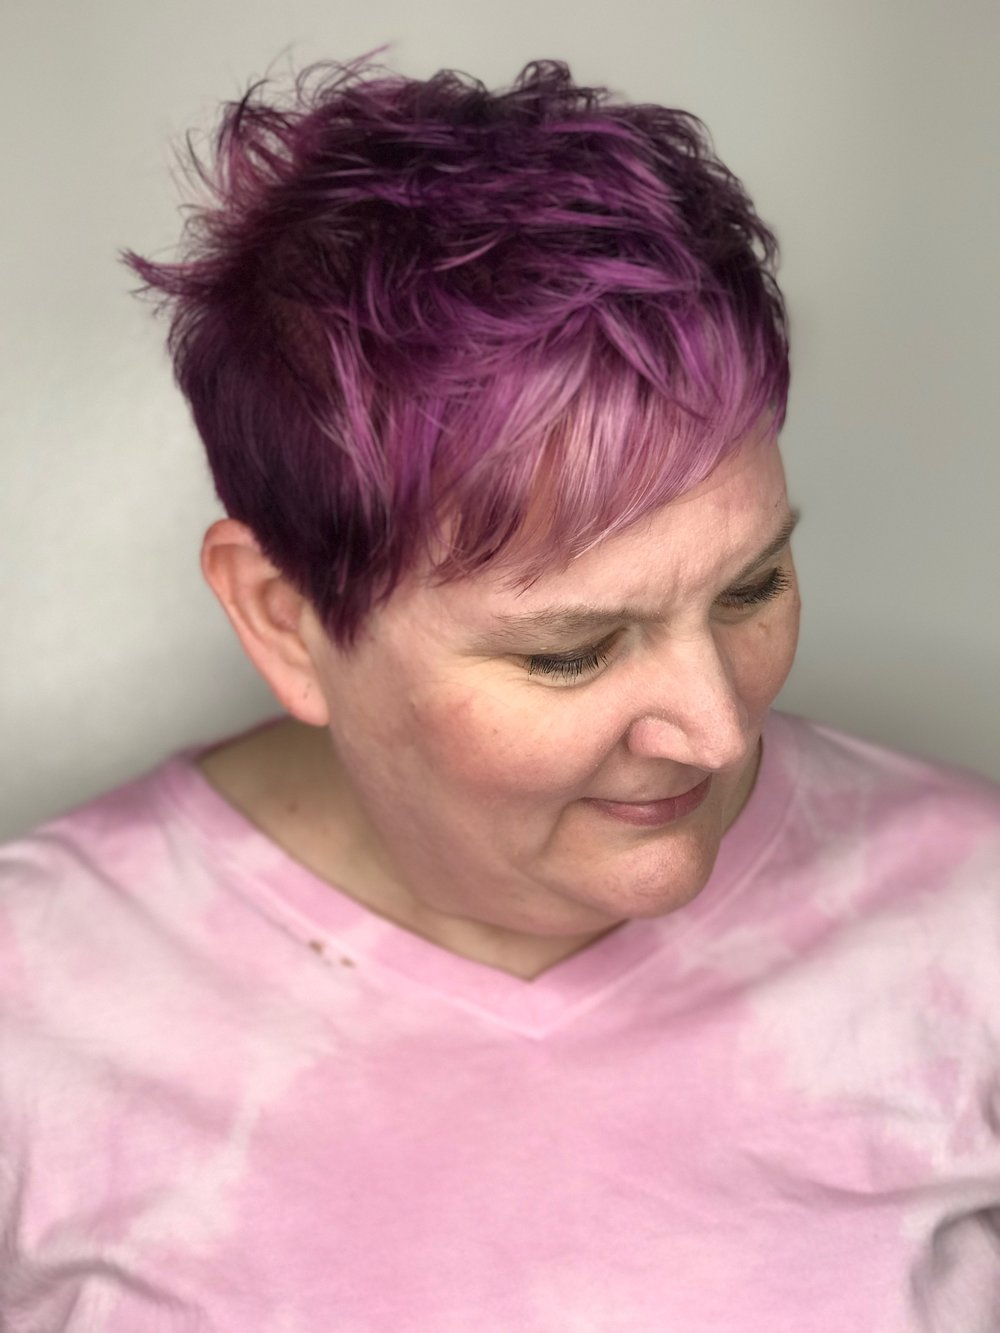 purple hair color allen texas.JPG